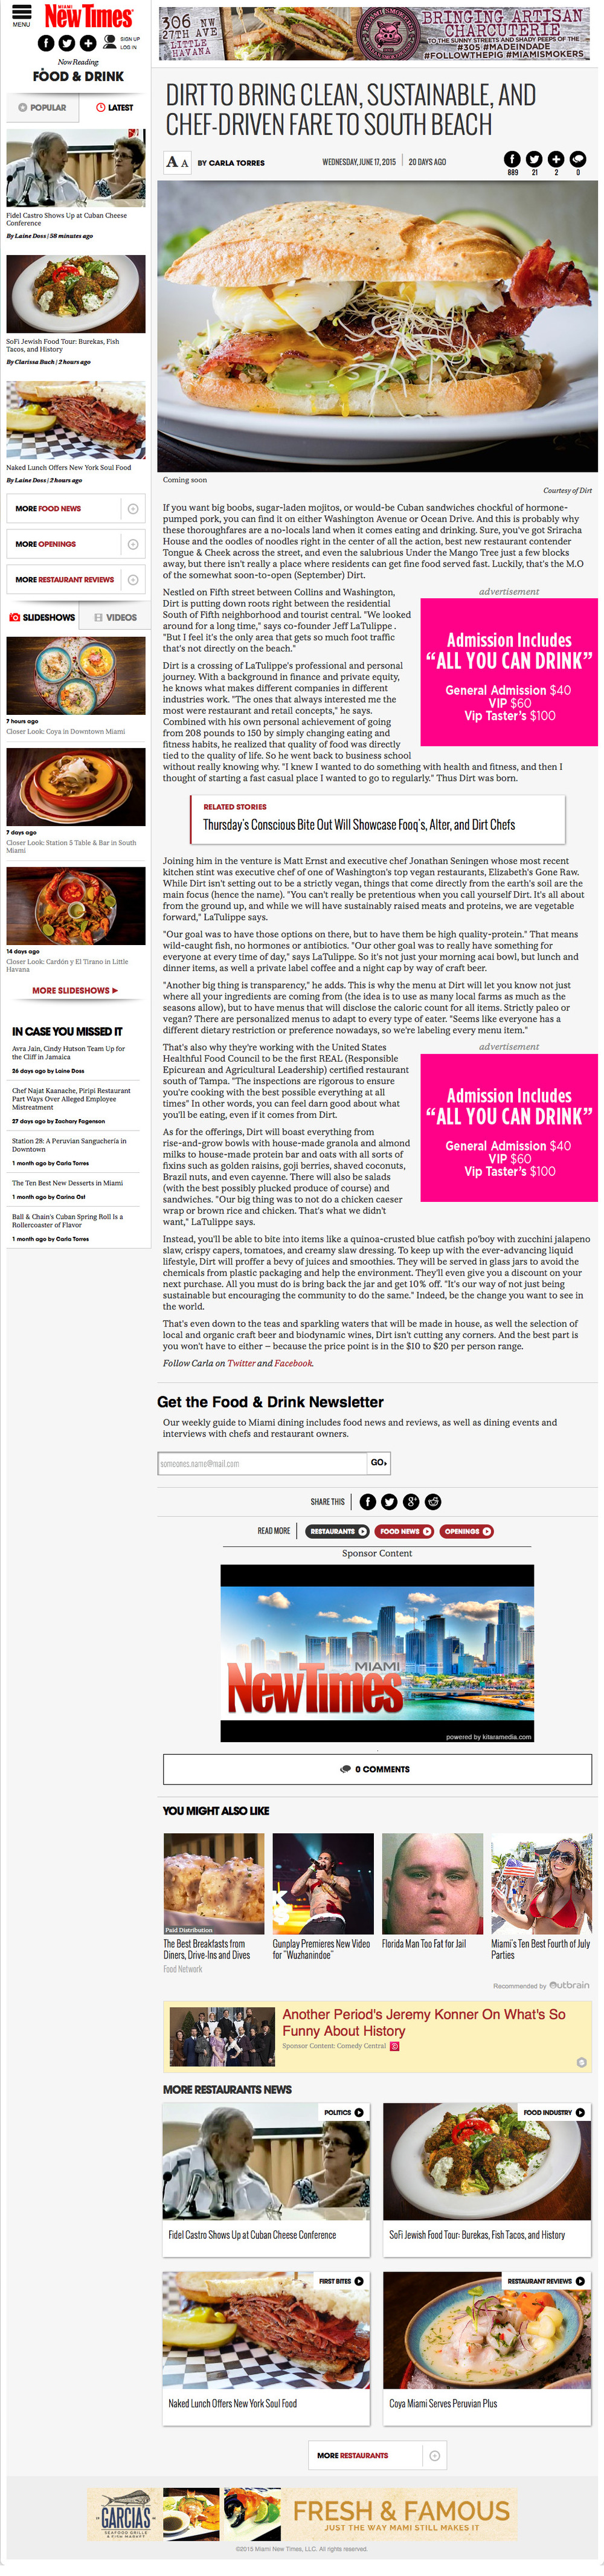 Dirt to Bring Clean, Sustainable, and Chef-Driven Fare to South Beach | Miami New Times 2015-07-07 11-06-15.jpeg